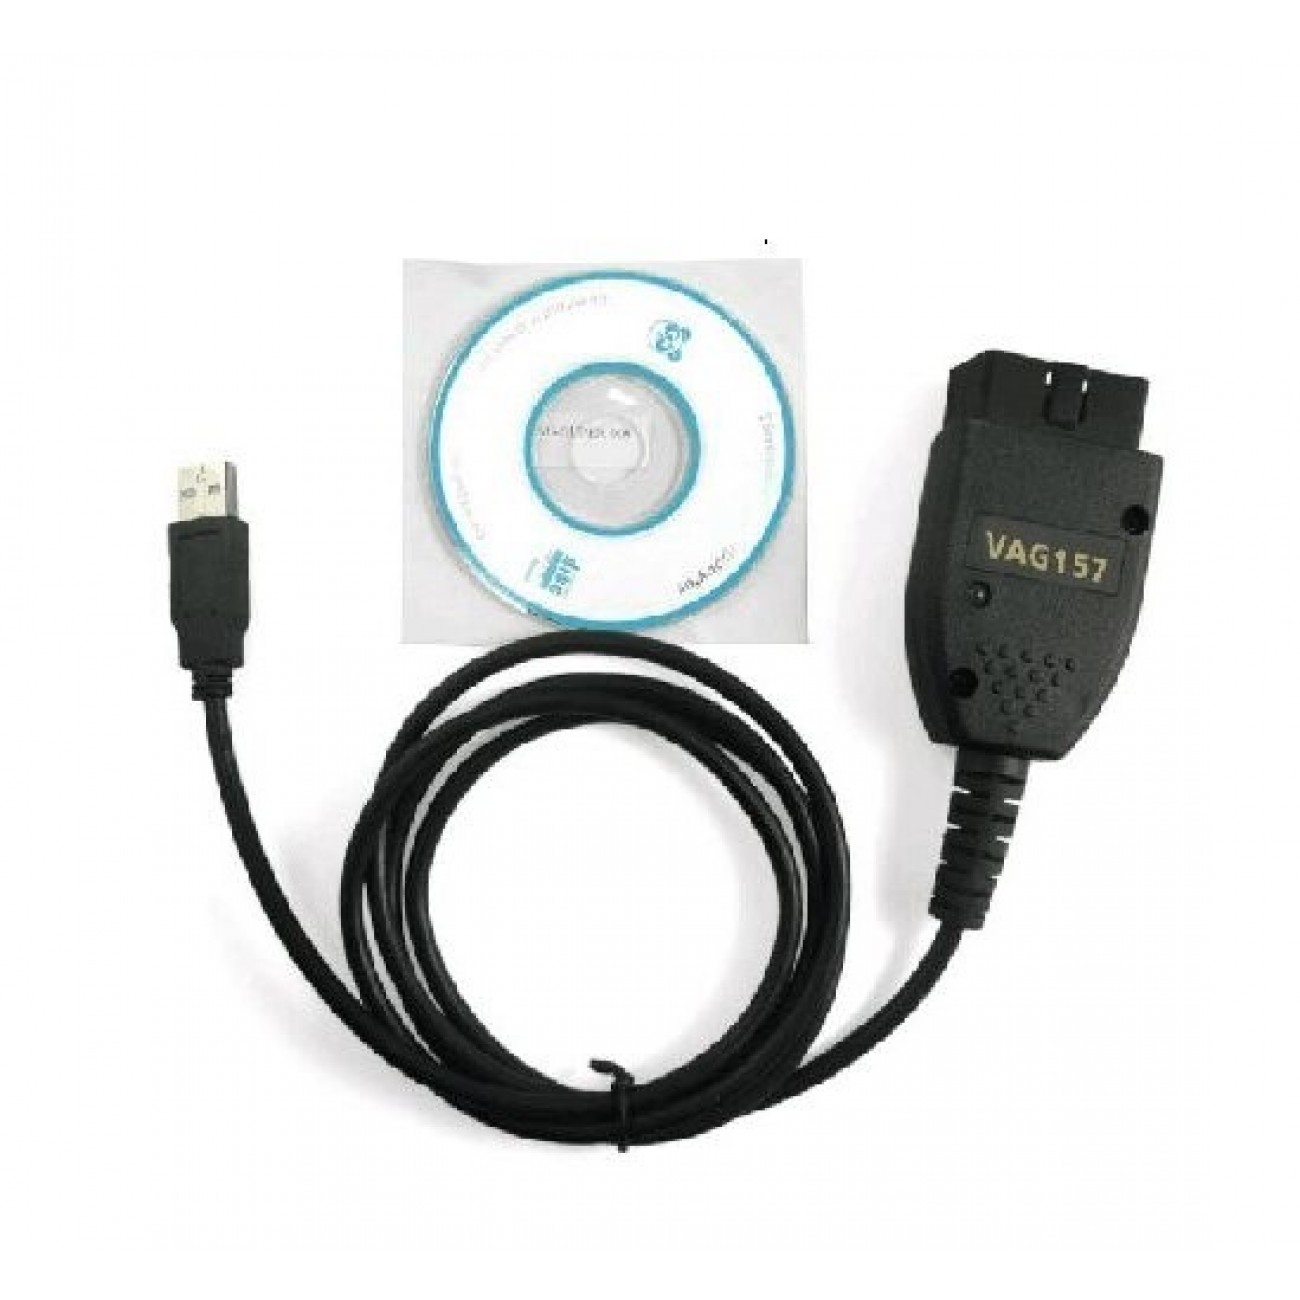 VAG COM VCDS 15 74 VAG 15 74 Cable Support Long Coding